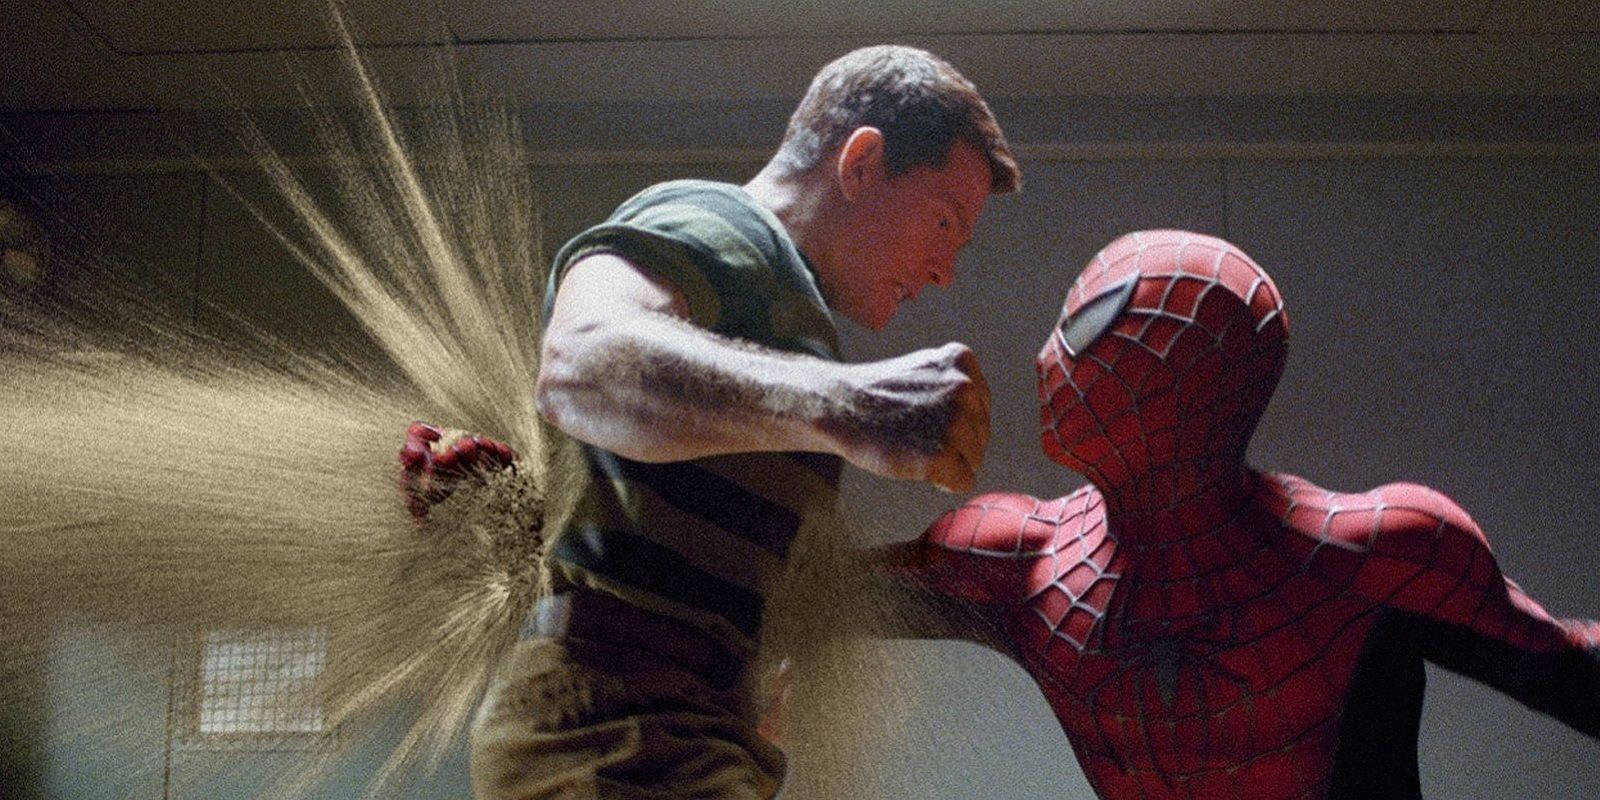 15 Most Powerful Spider-Man Villains